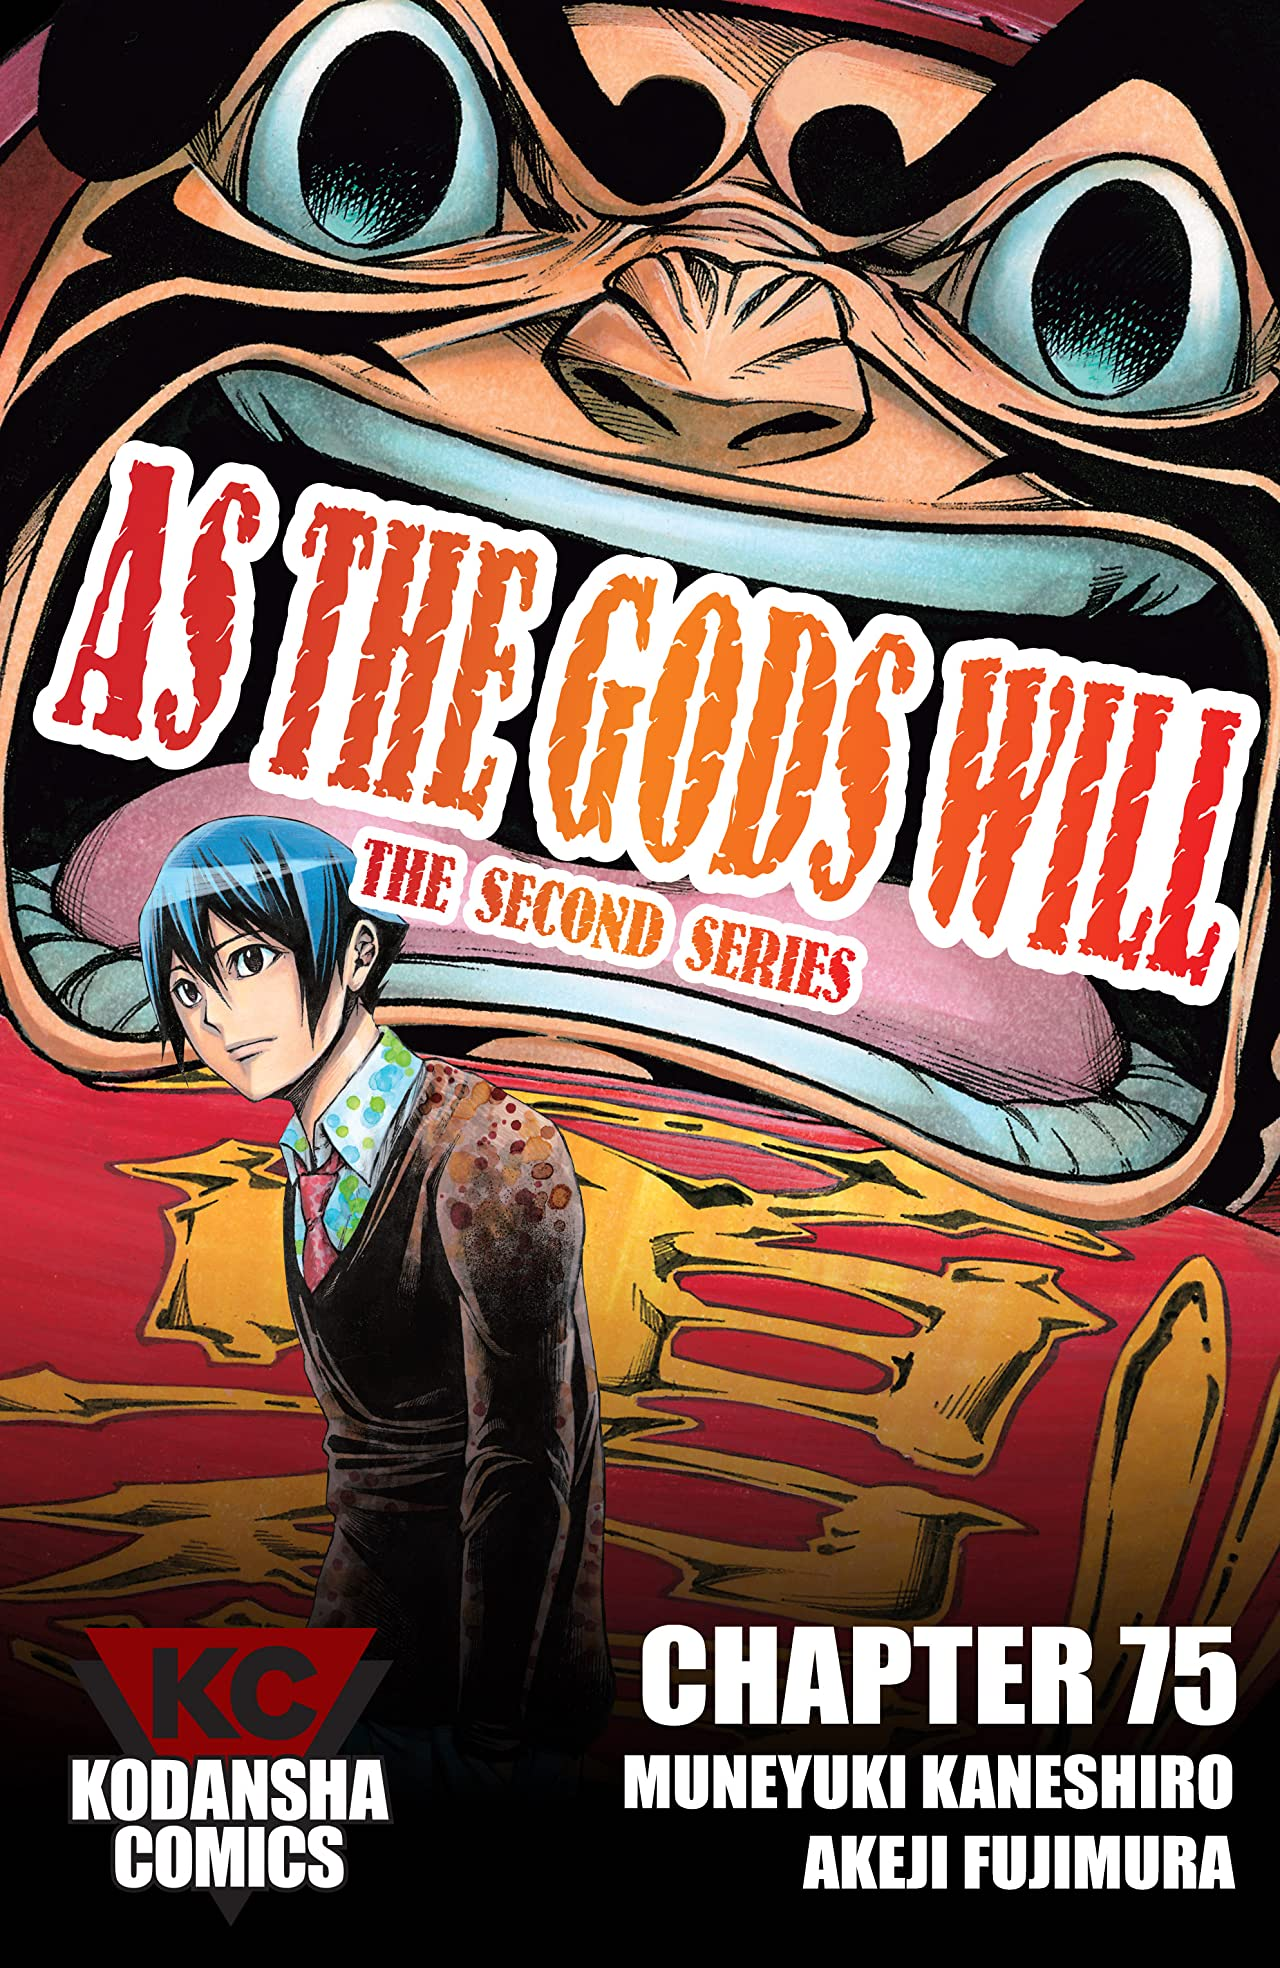 As The Gods Will: The Second Series #75